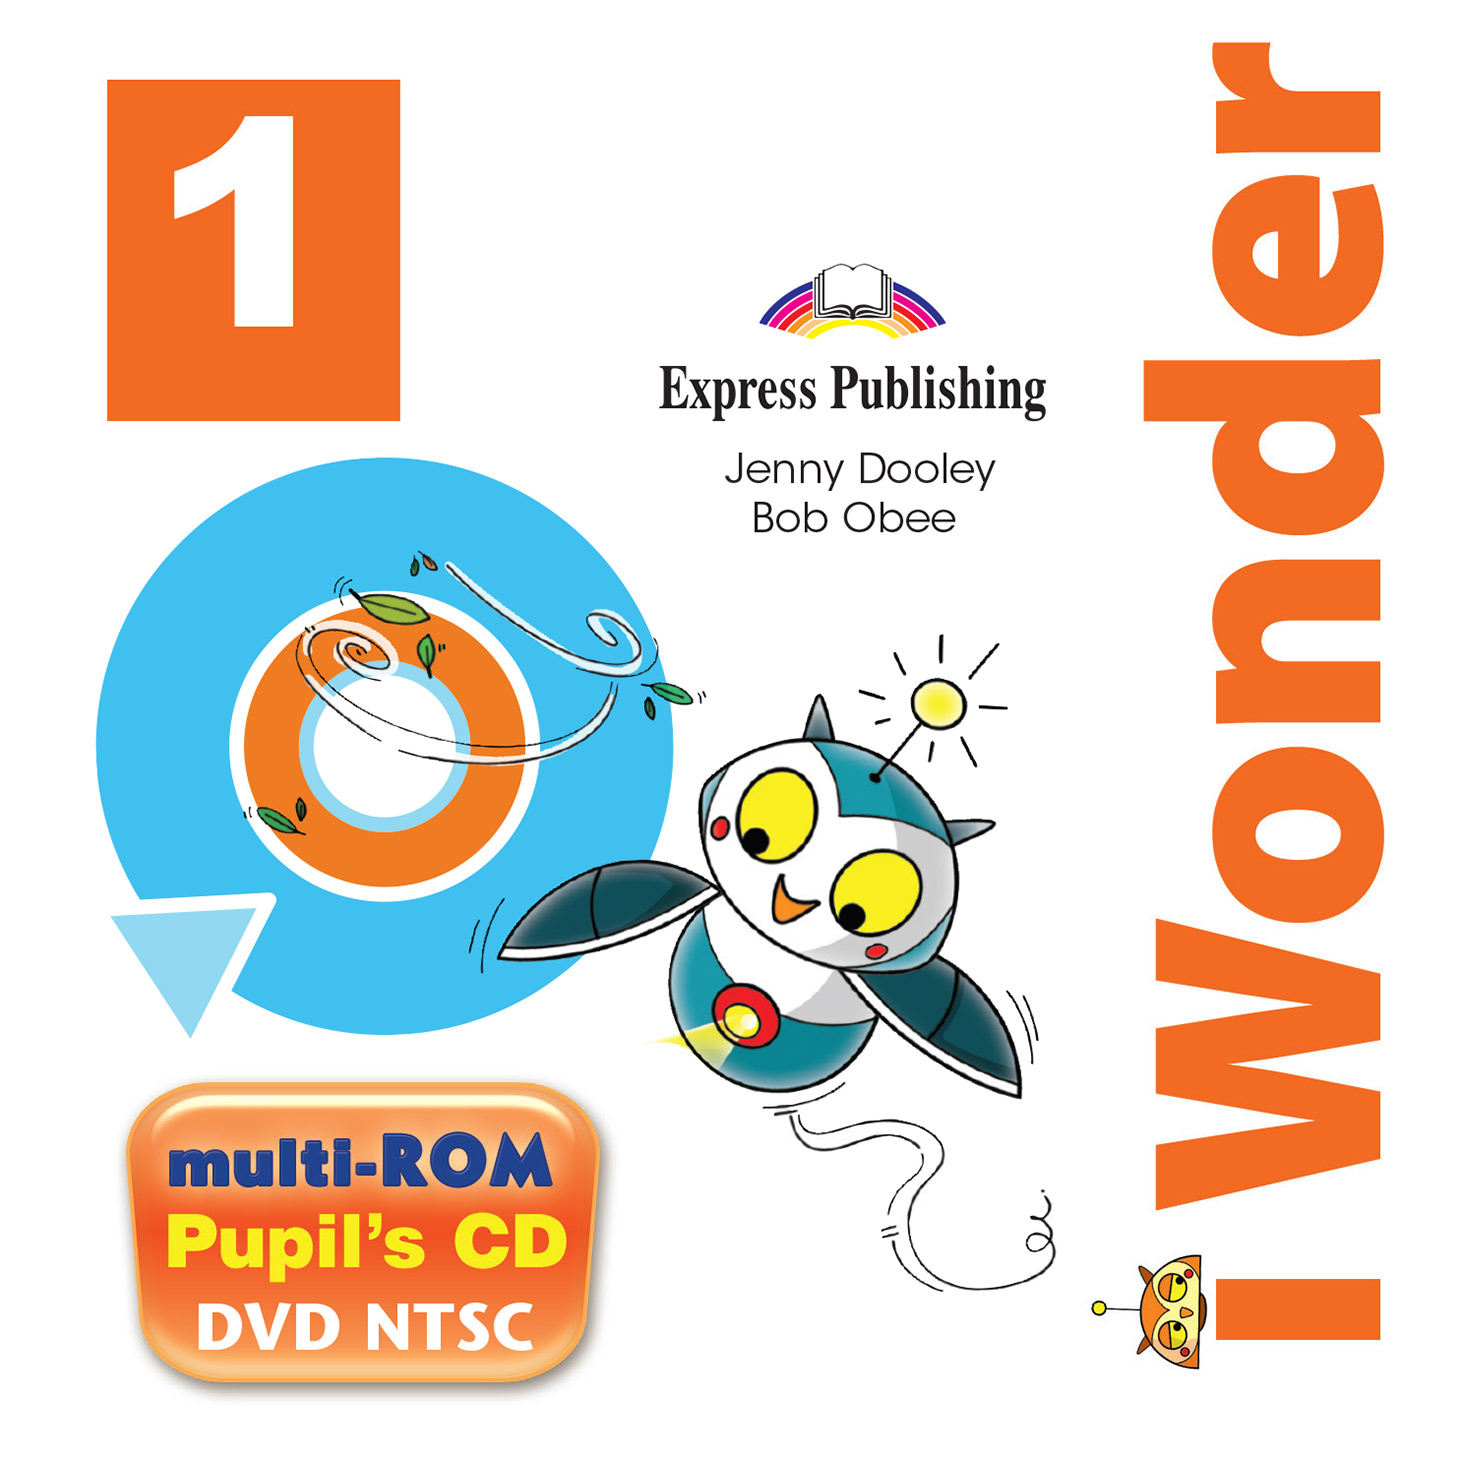 iWonder 1 - multi-ROM (Pupil's Audio CD / DVD Video NTSC)